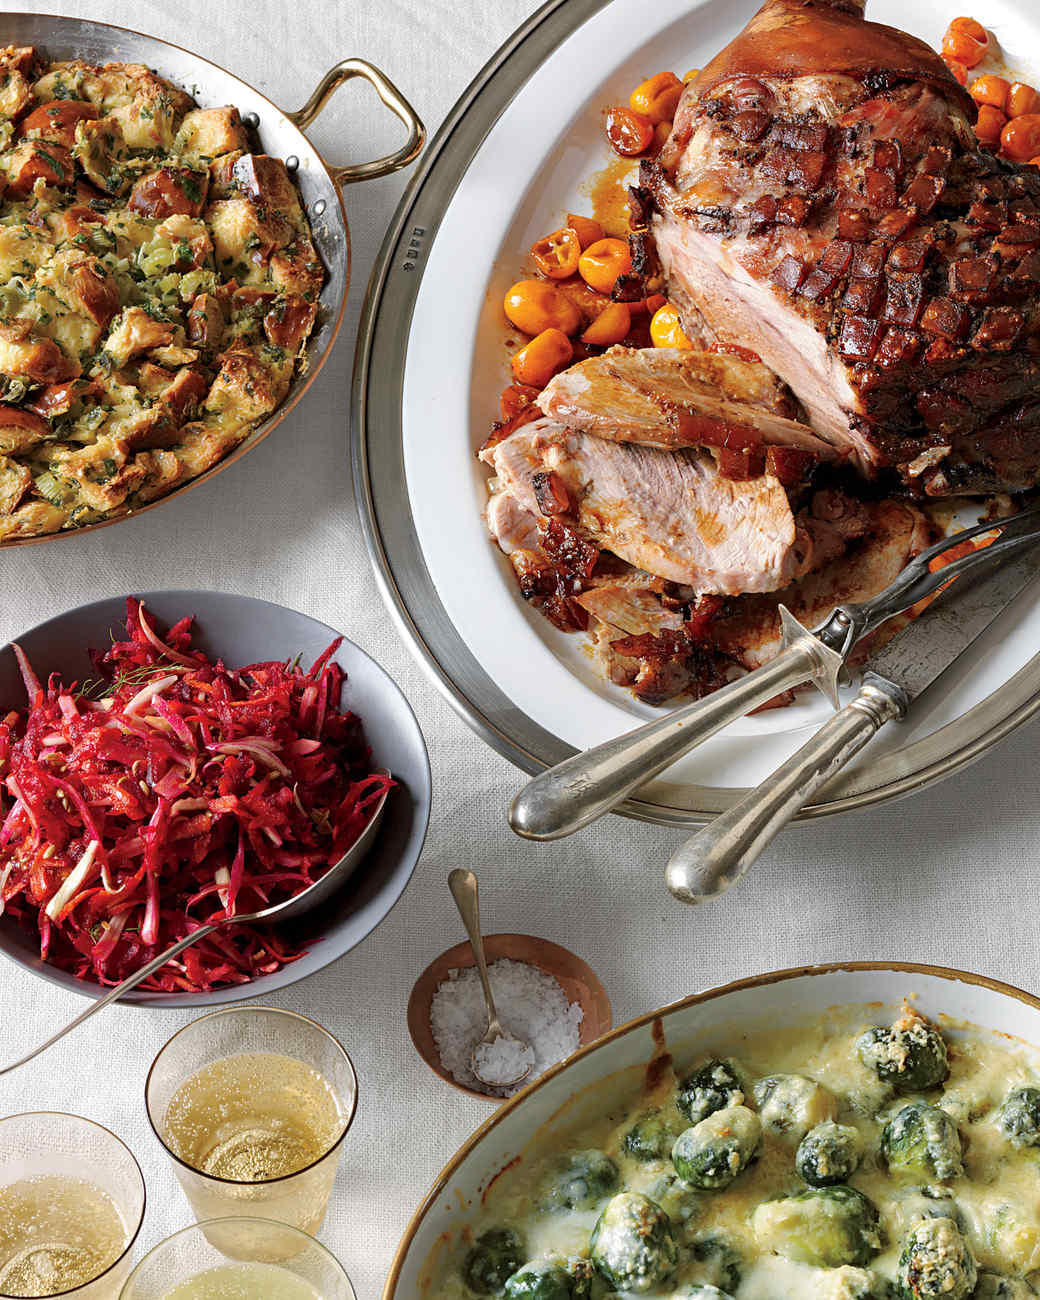 Festive dinner: recipes with photos 39